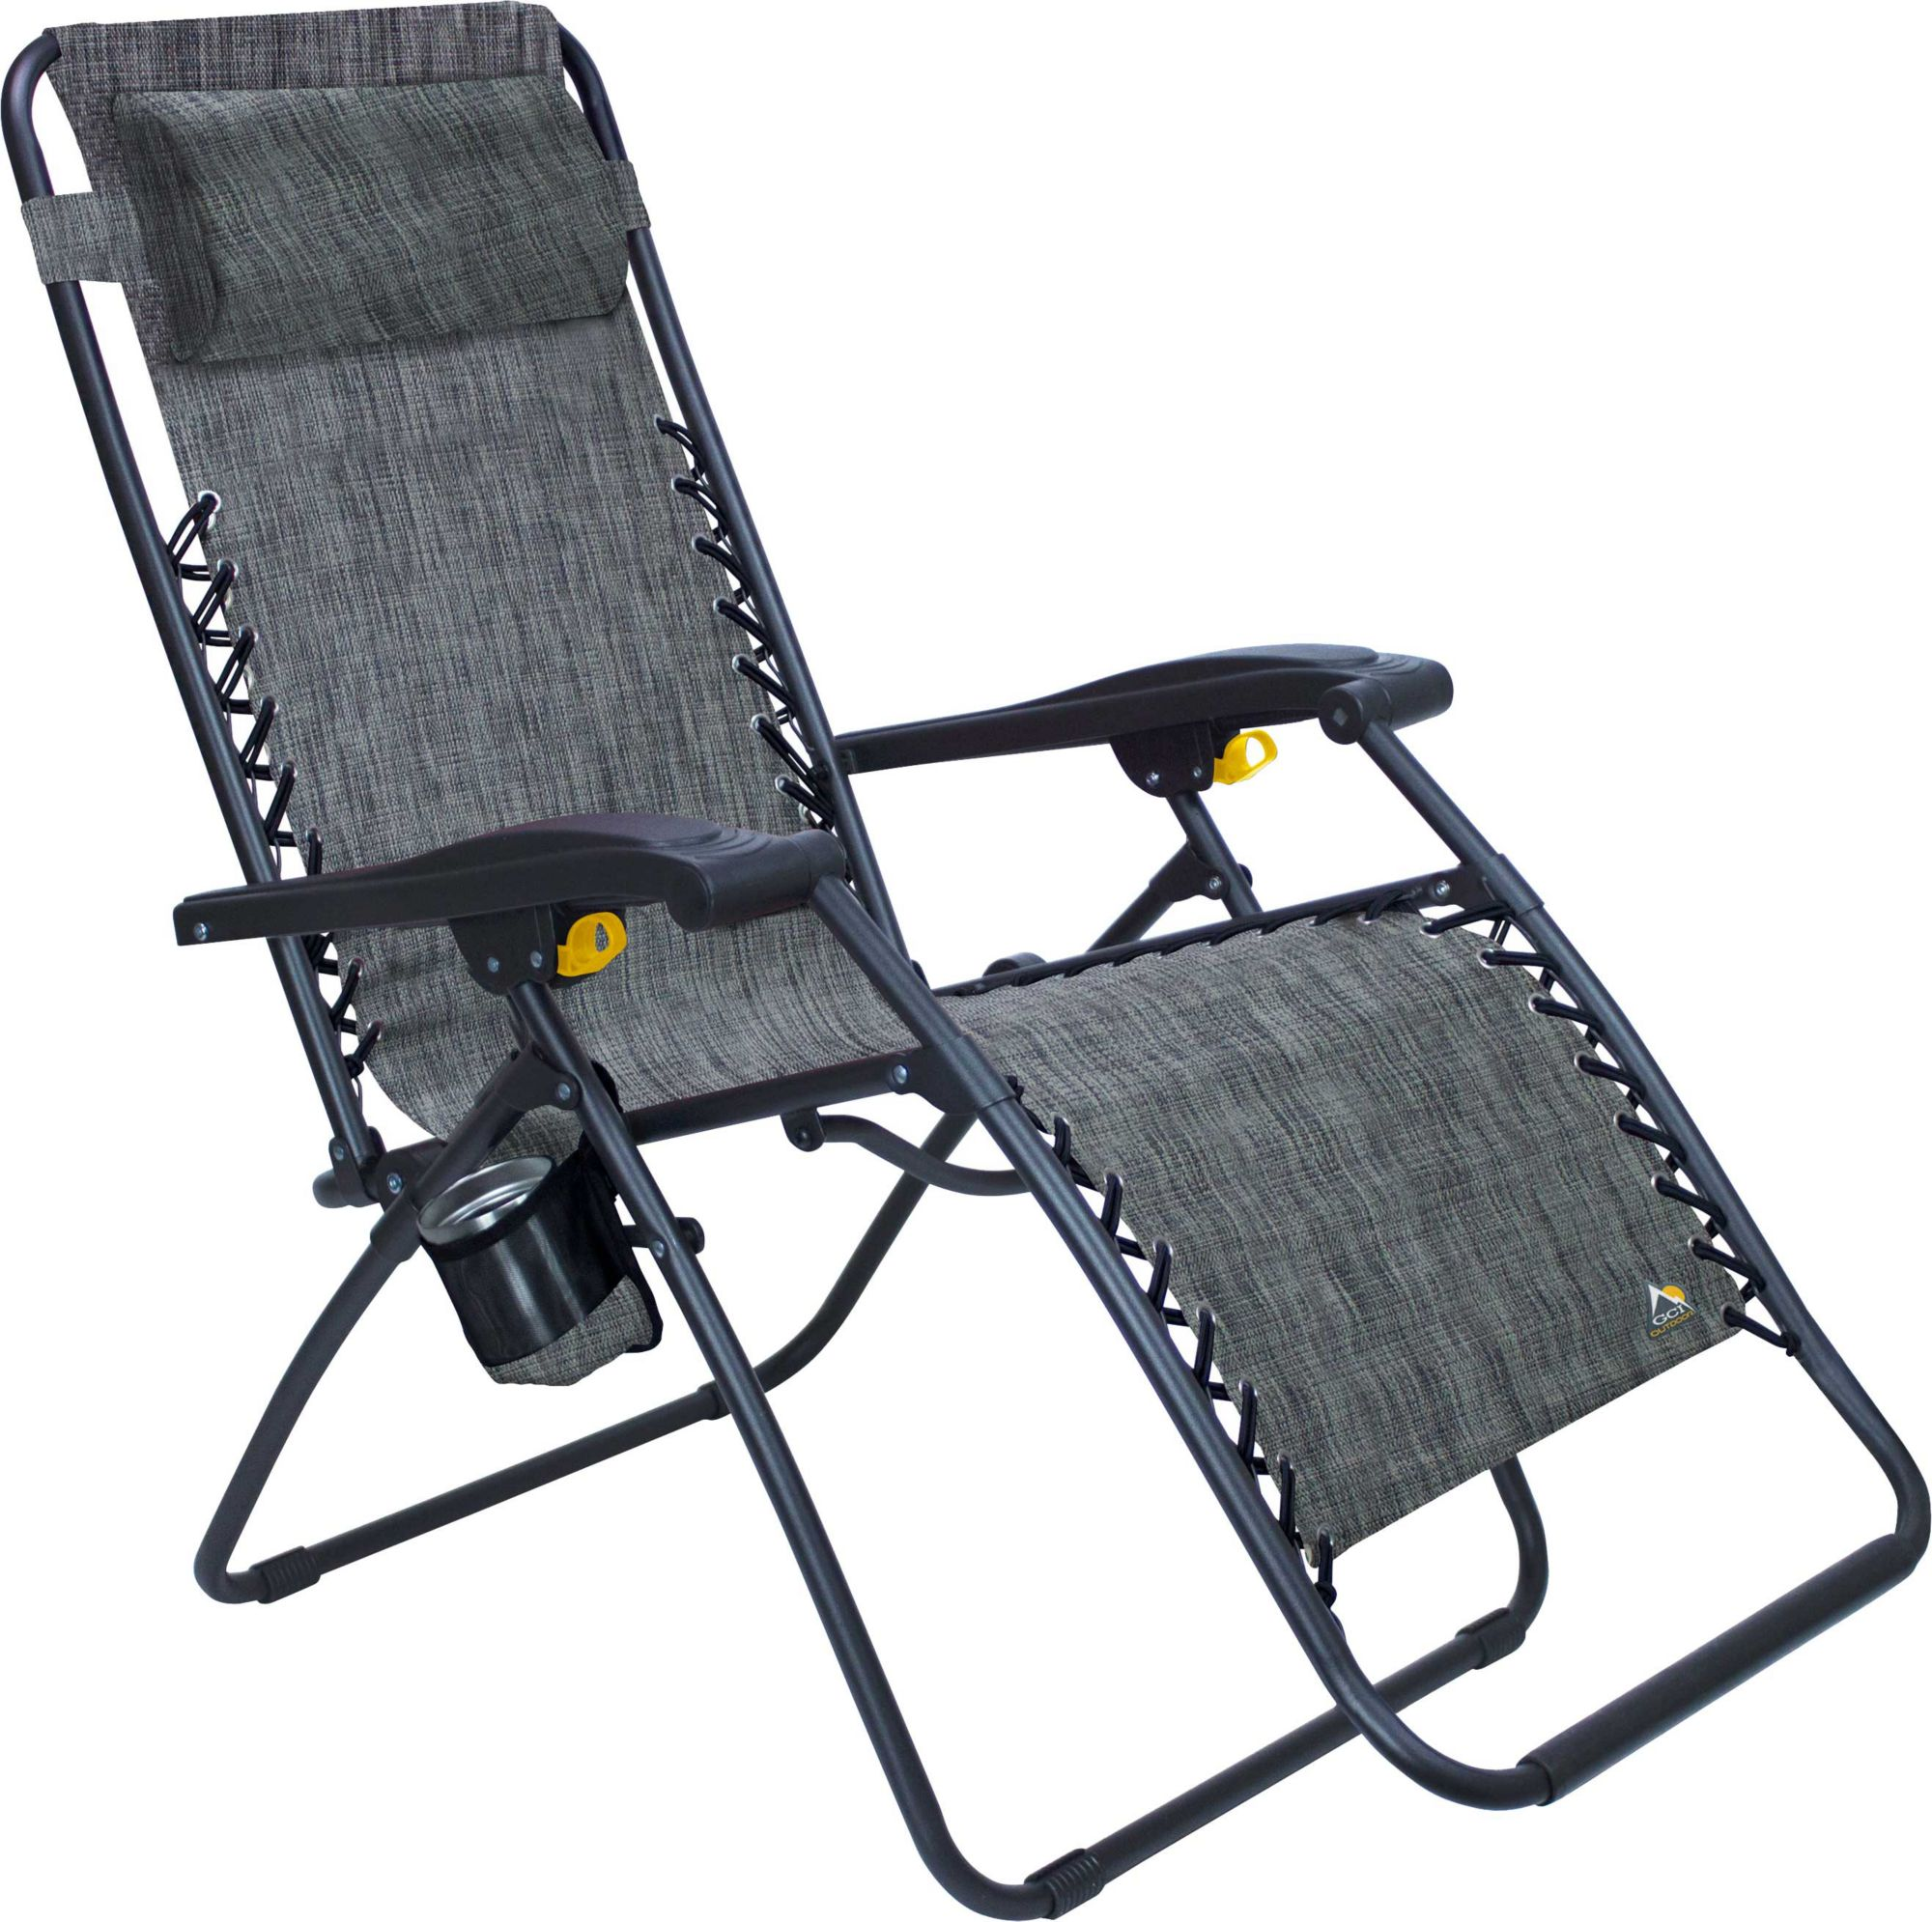 Camping chairs with umbrella - Product Image Gci Outdoor Zero Gravity Chair